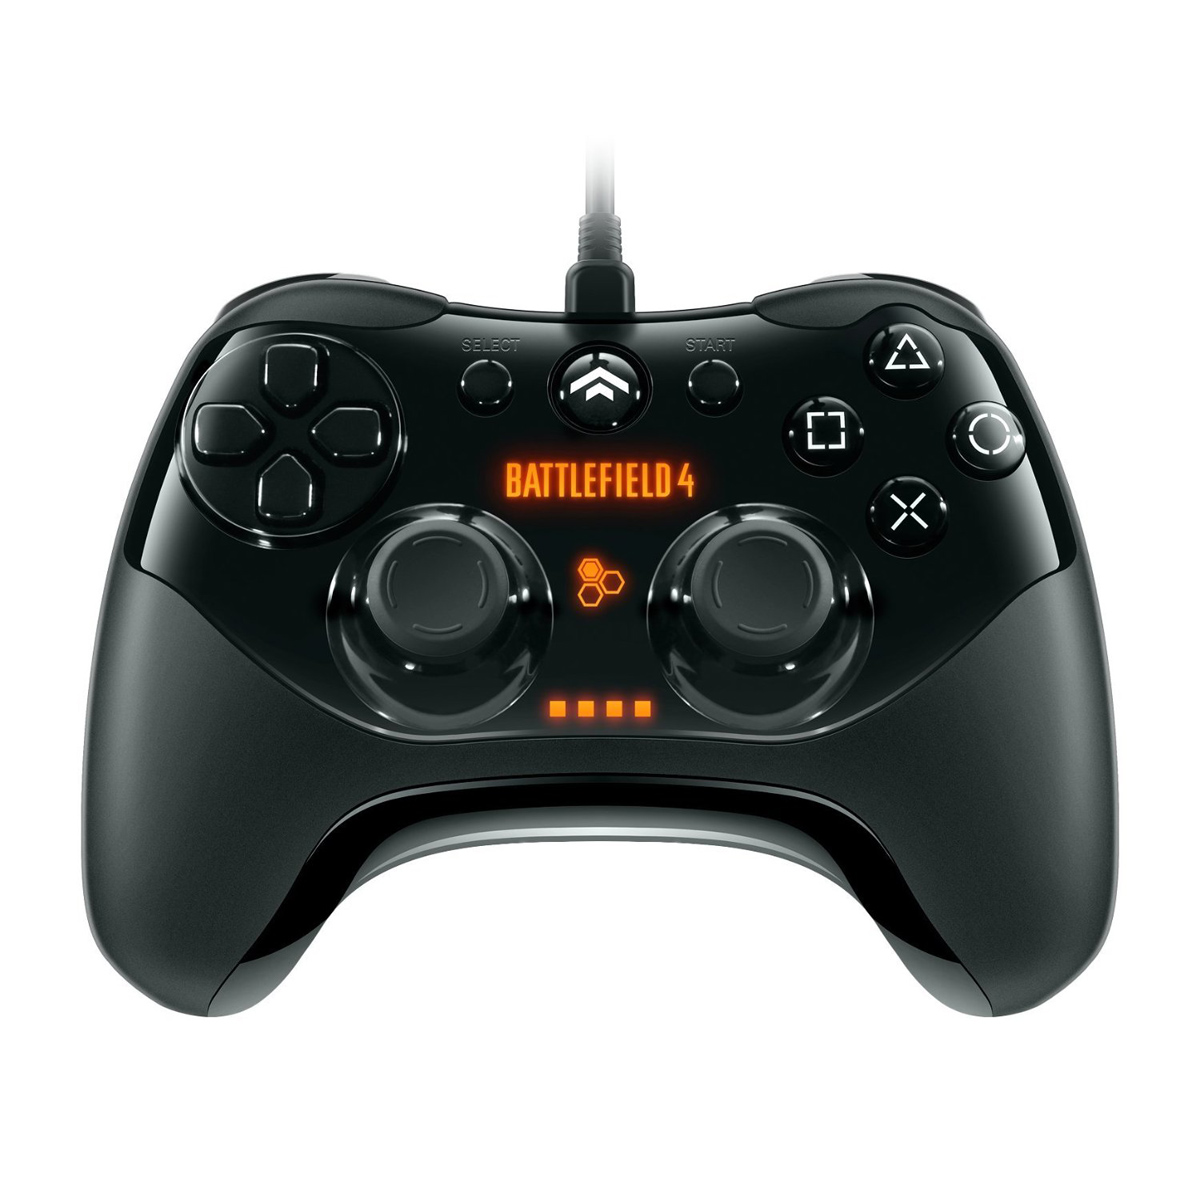 pdp controller wired battlefield 4 ps3 accessoires xbox 360 pdp sur ldlc. Black Bedroom Furniture Sets. Home Design Ideas